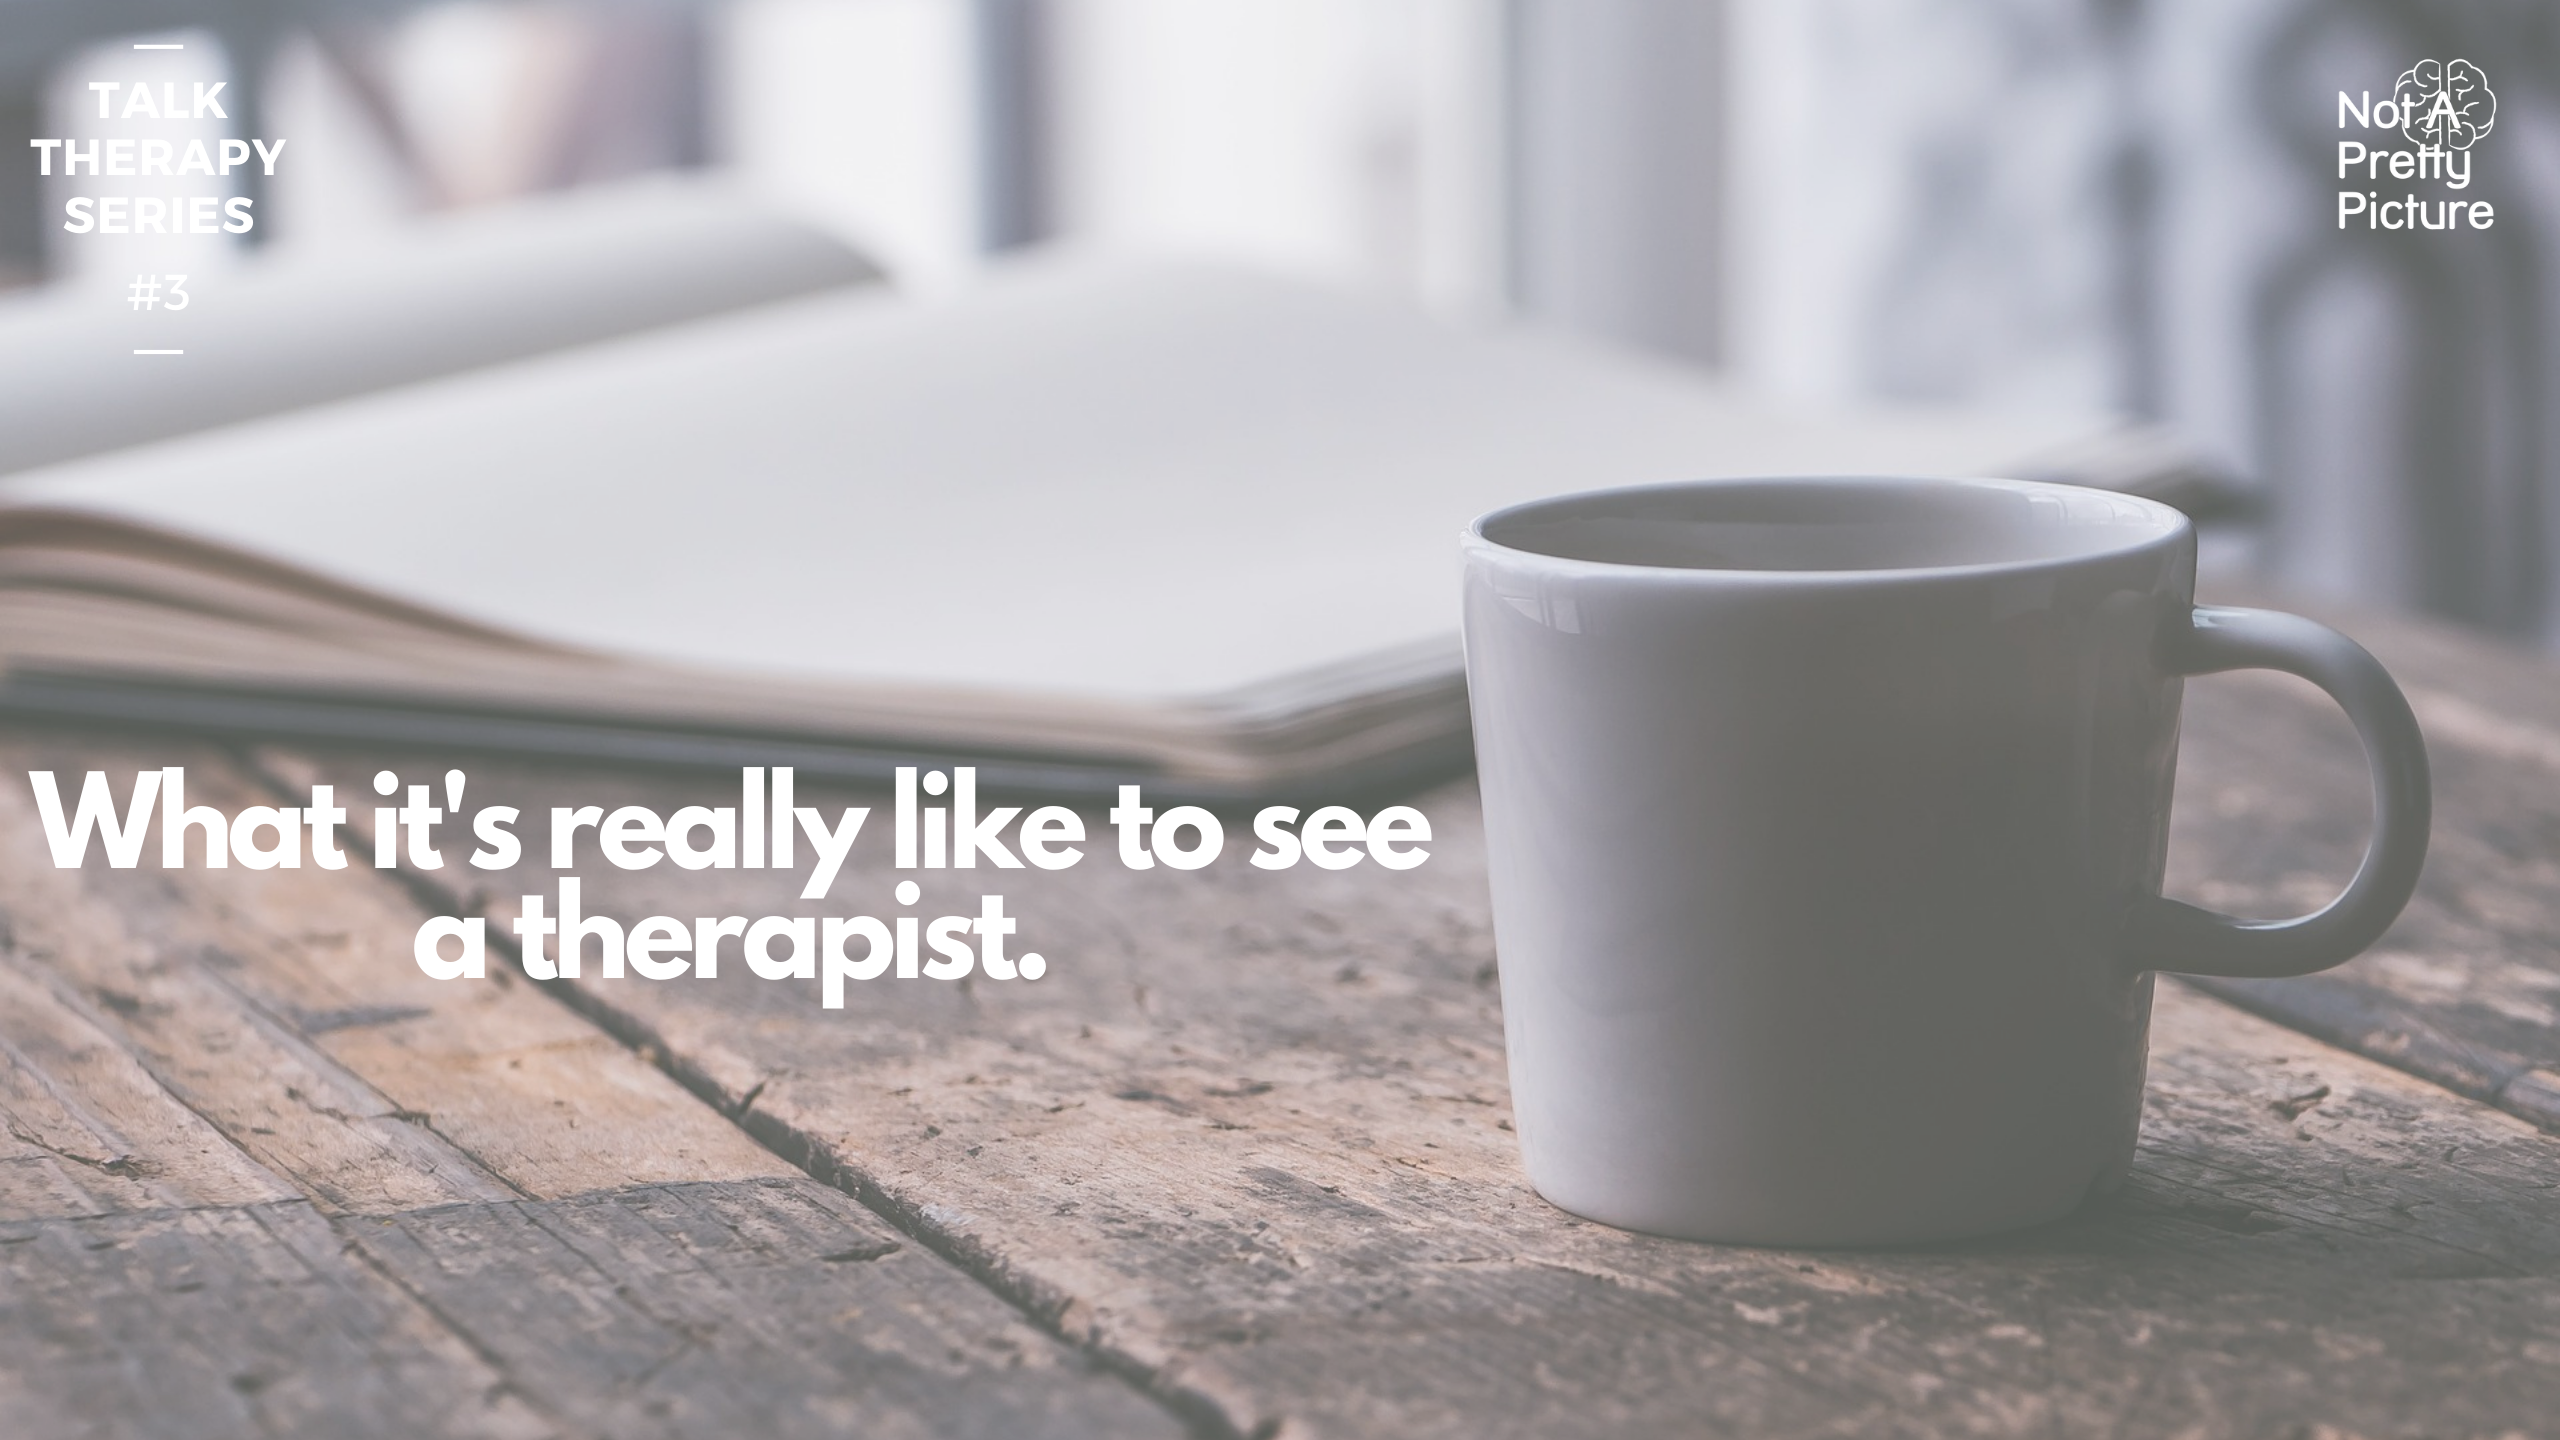 What it's really like to see a therapist.